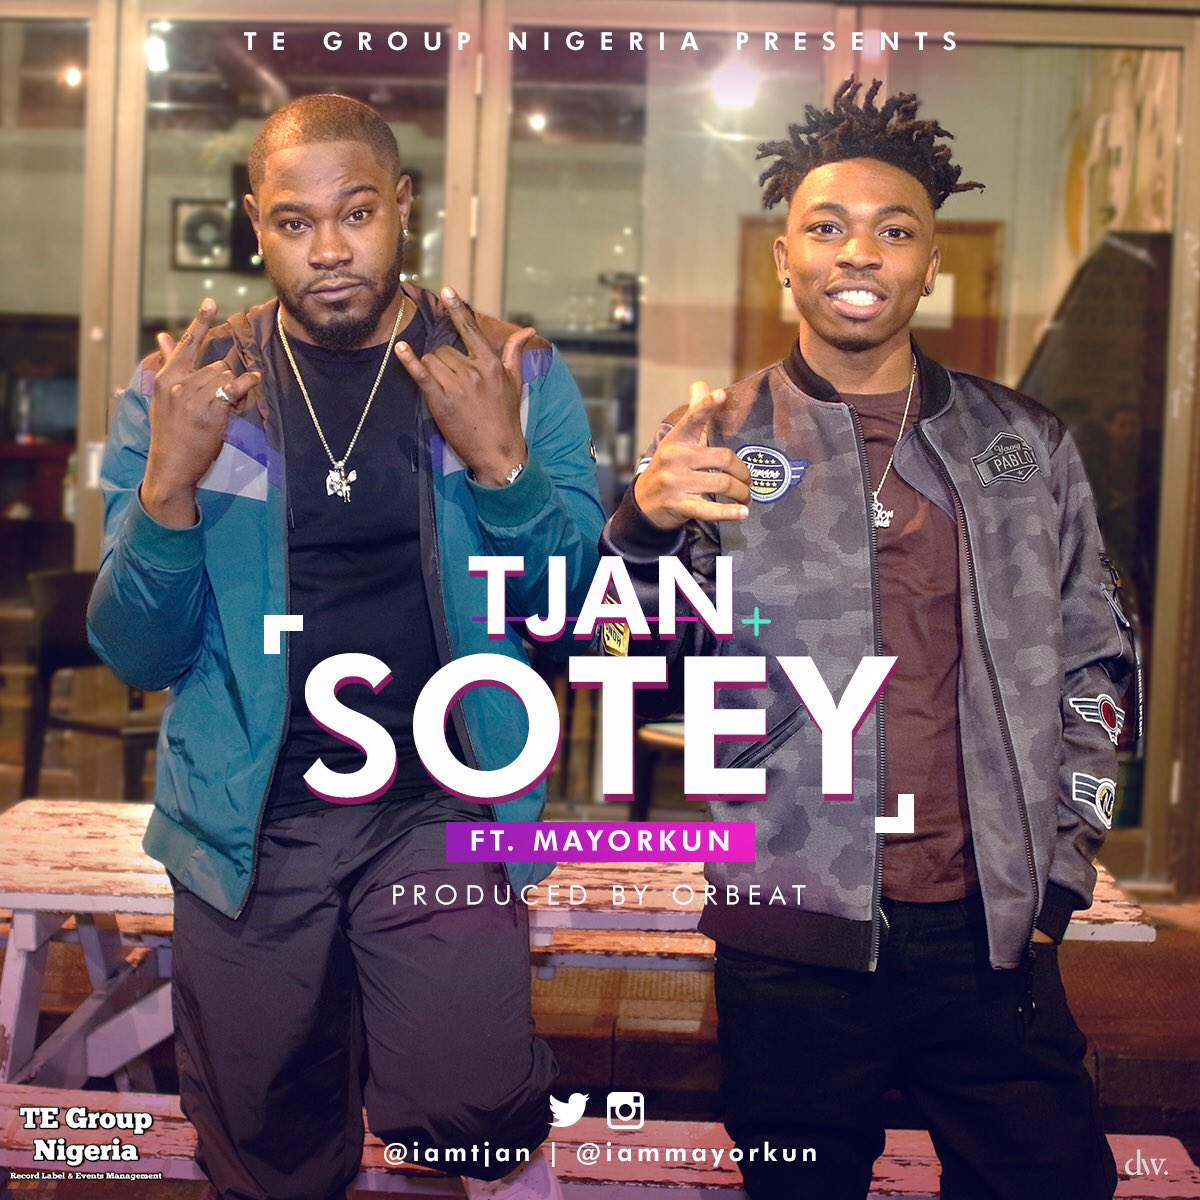 Tjan ft. Mayorkun – Sotey